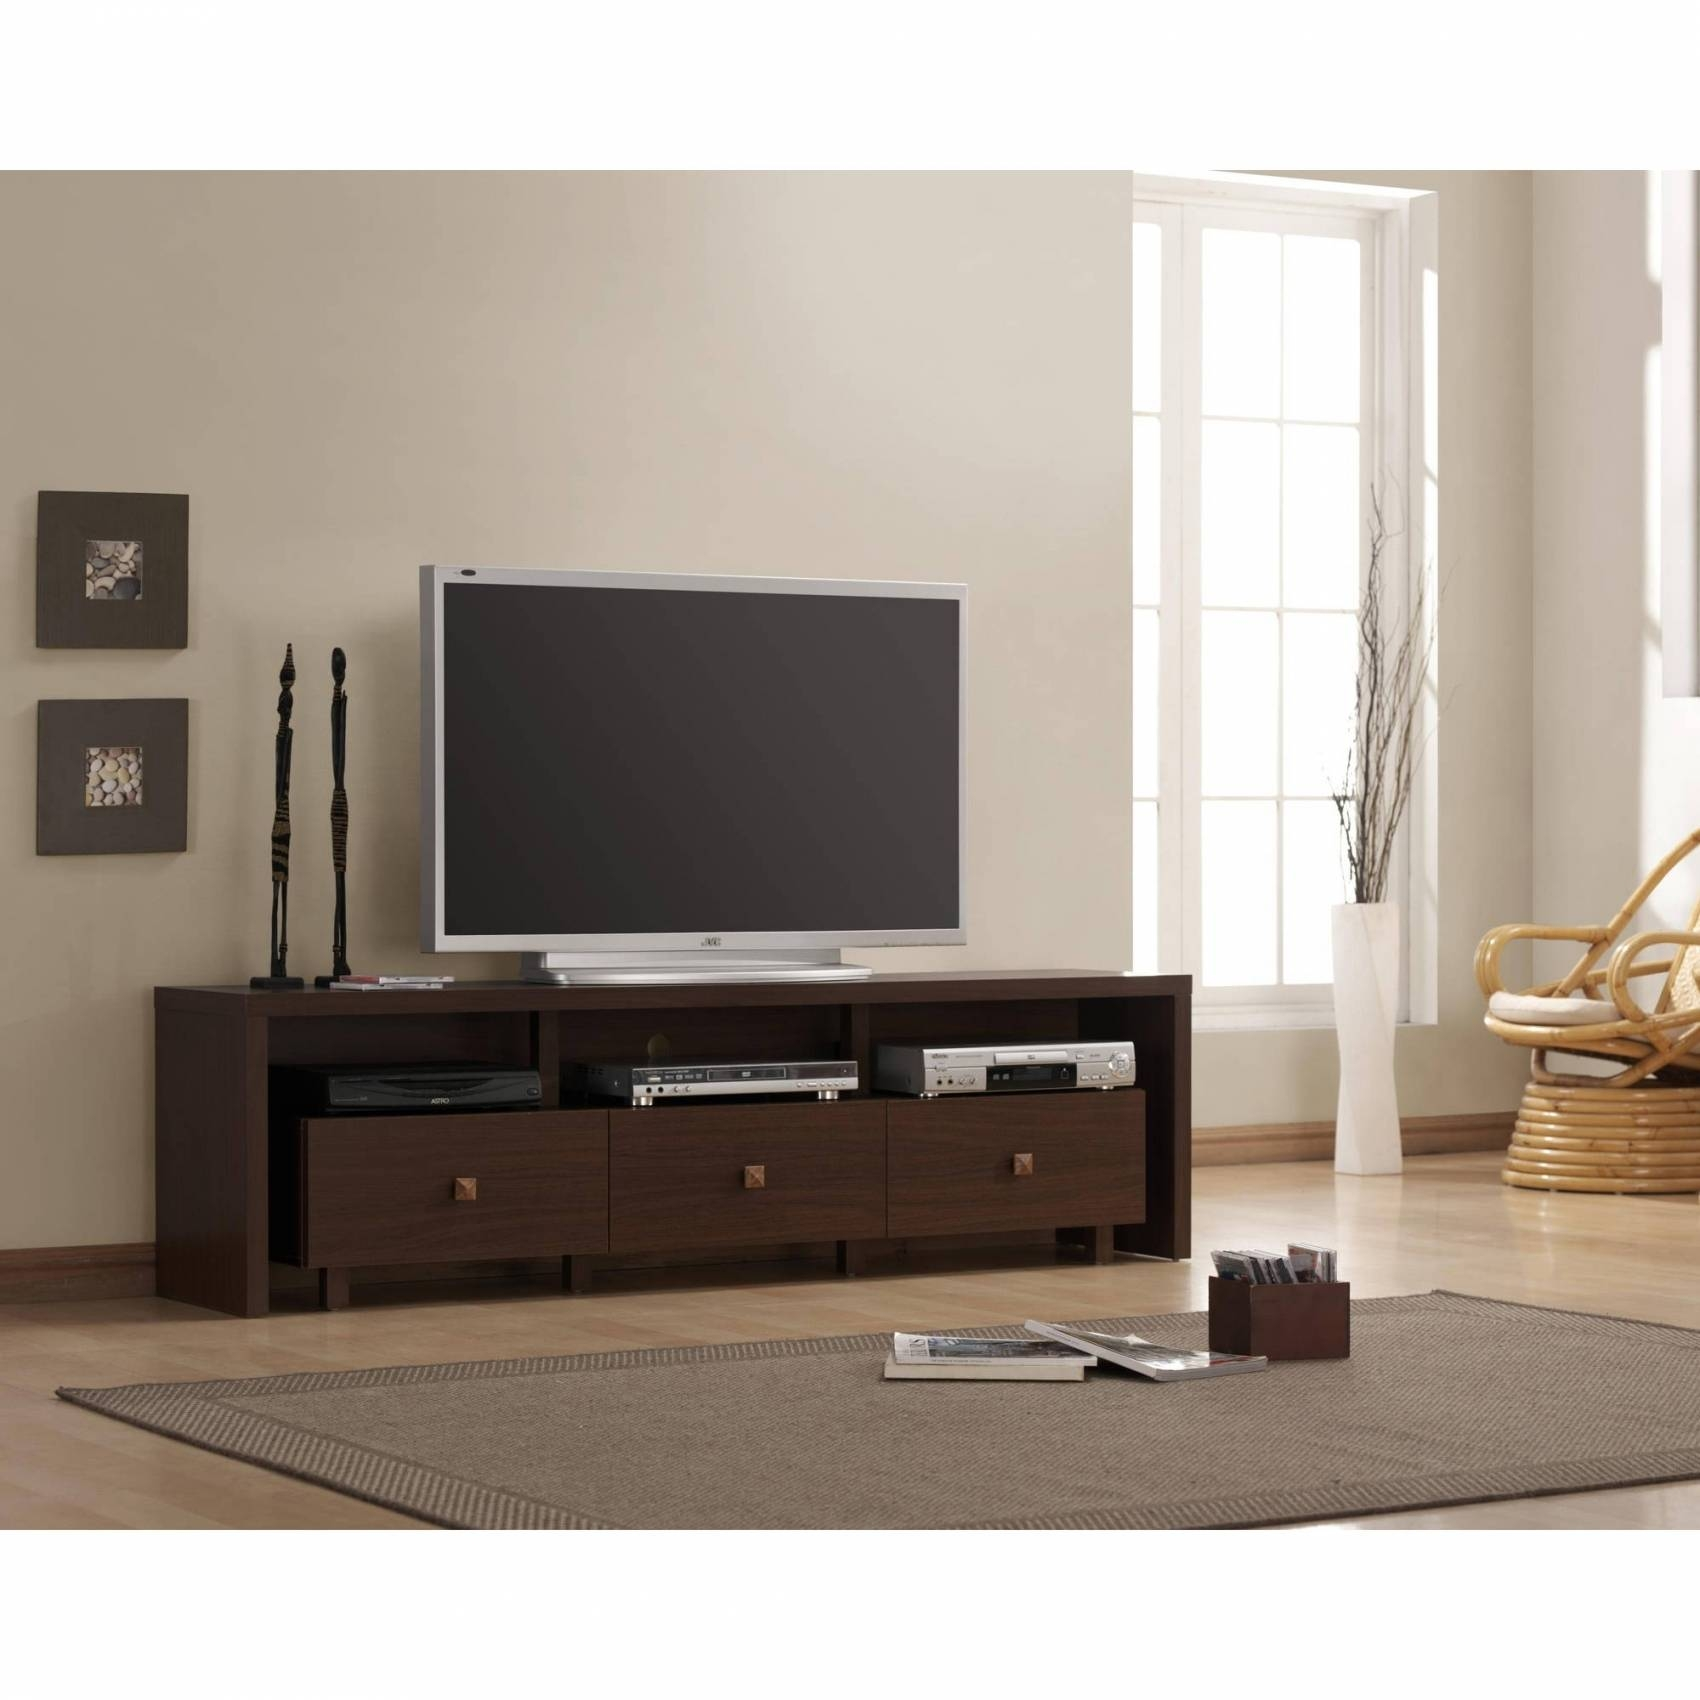 Modern Tv Stands Up To 60 Inches Fresh | Vgmnation intended for Modern Tv Stands For 60 Inch Tvs (Image 7 of 15)